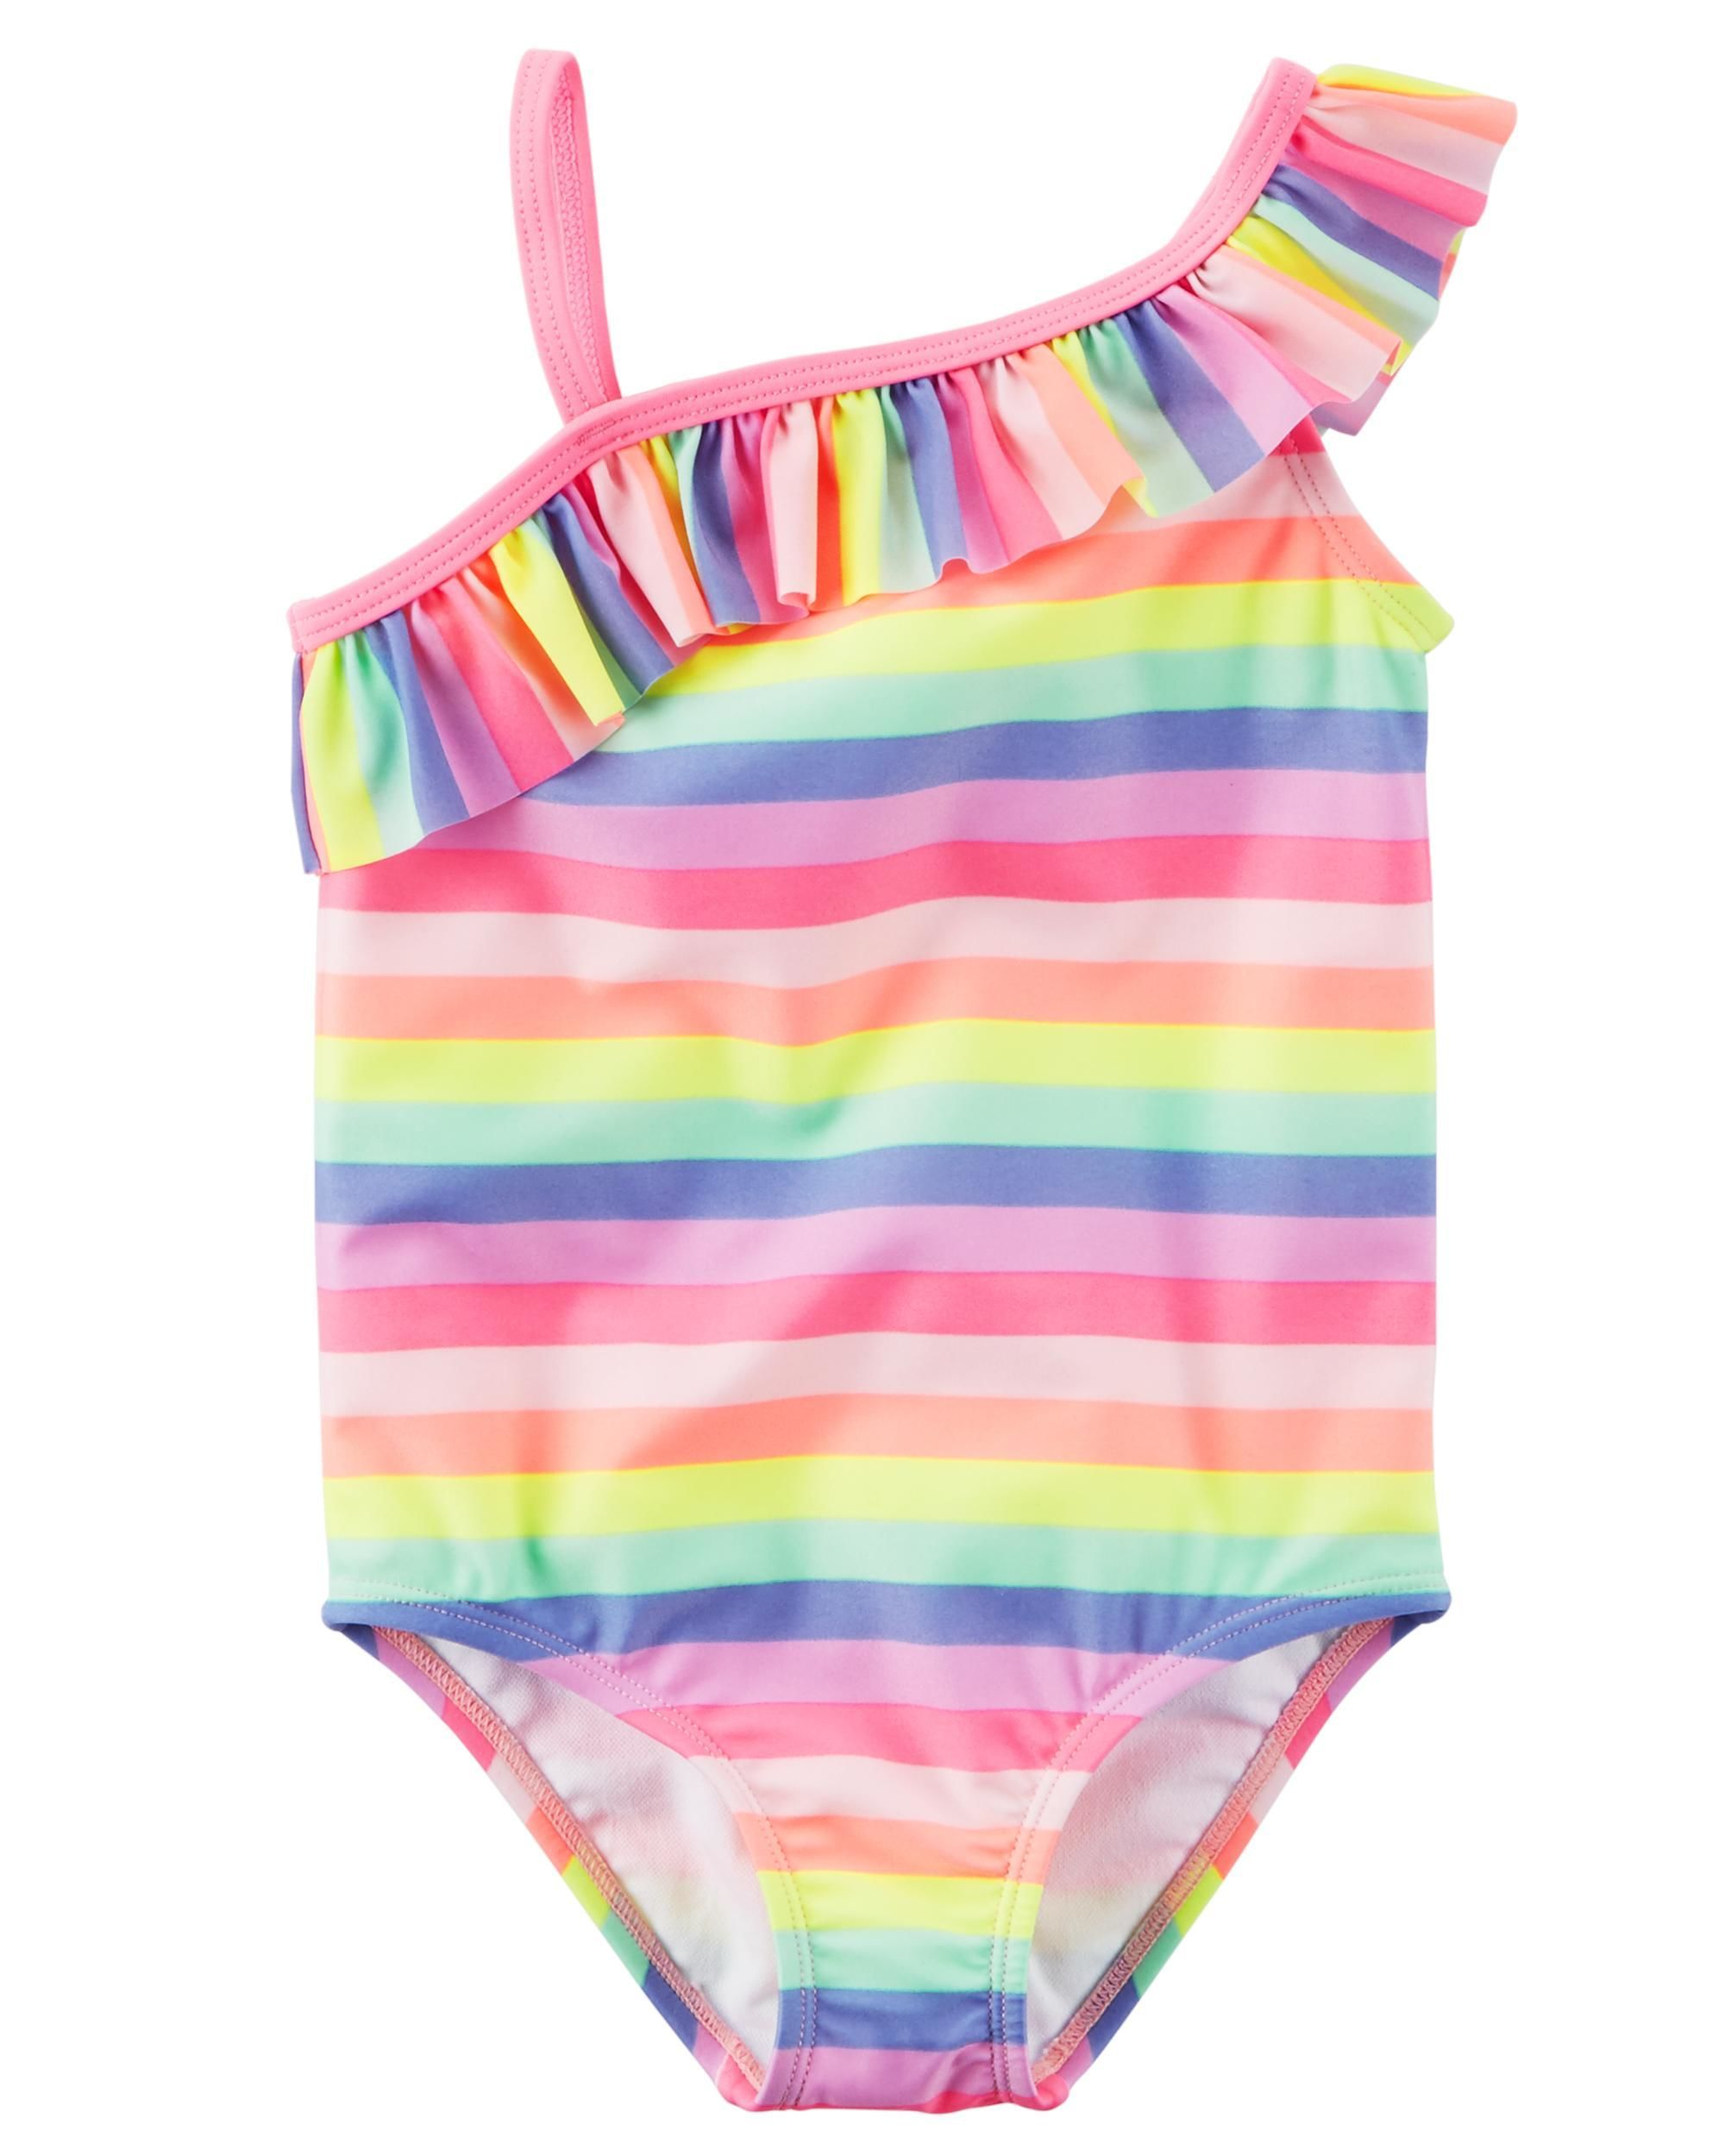 With UPF 50+ protection and a cute stripe print, this swimsuit is perfect for pool days or trips to the beach.